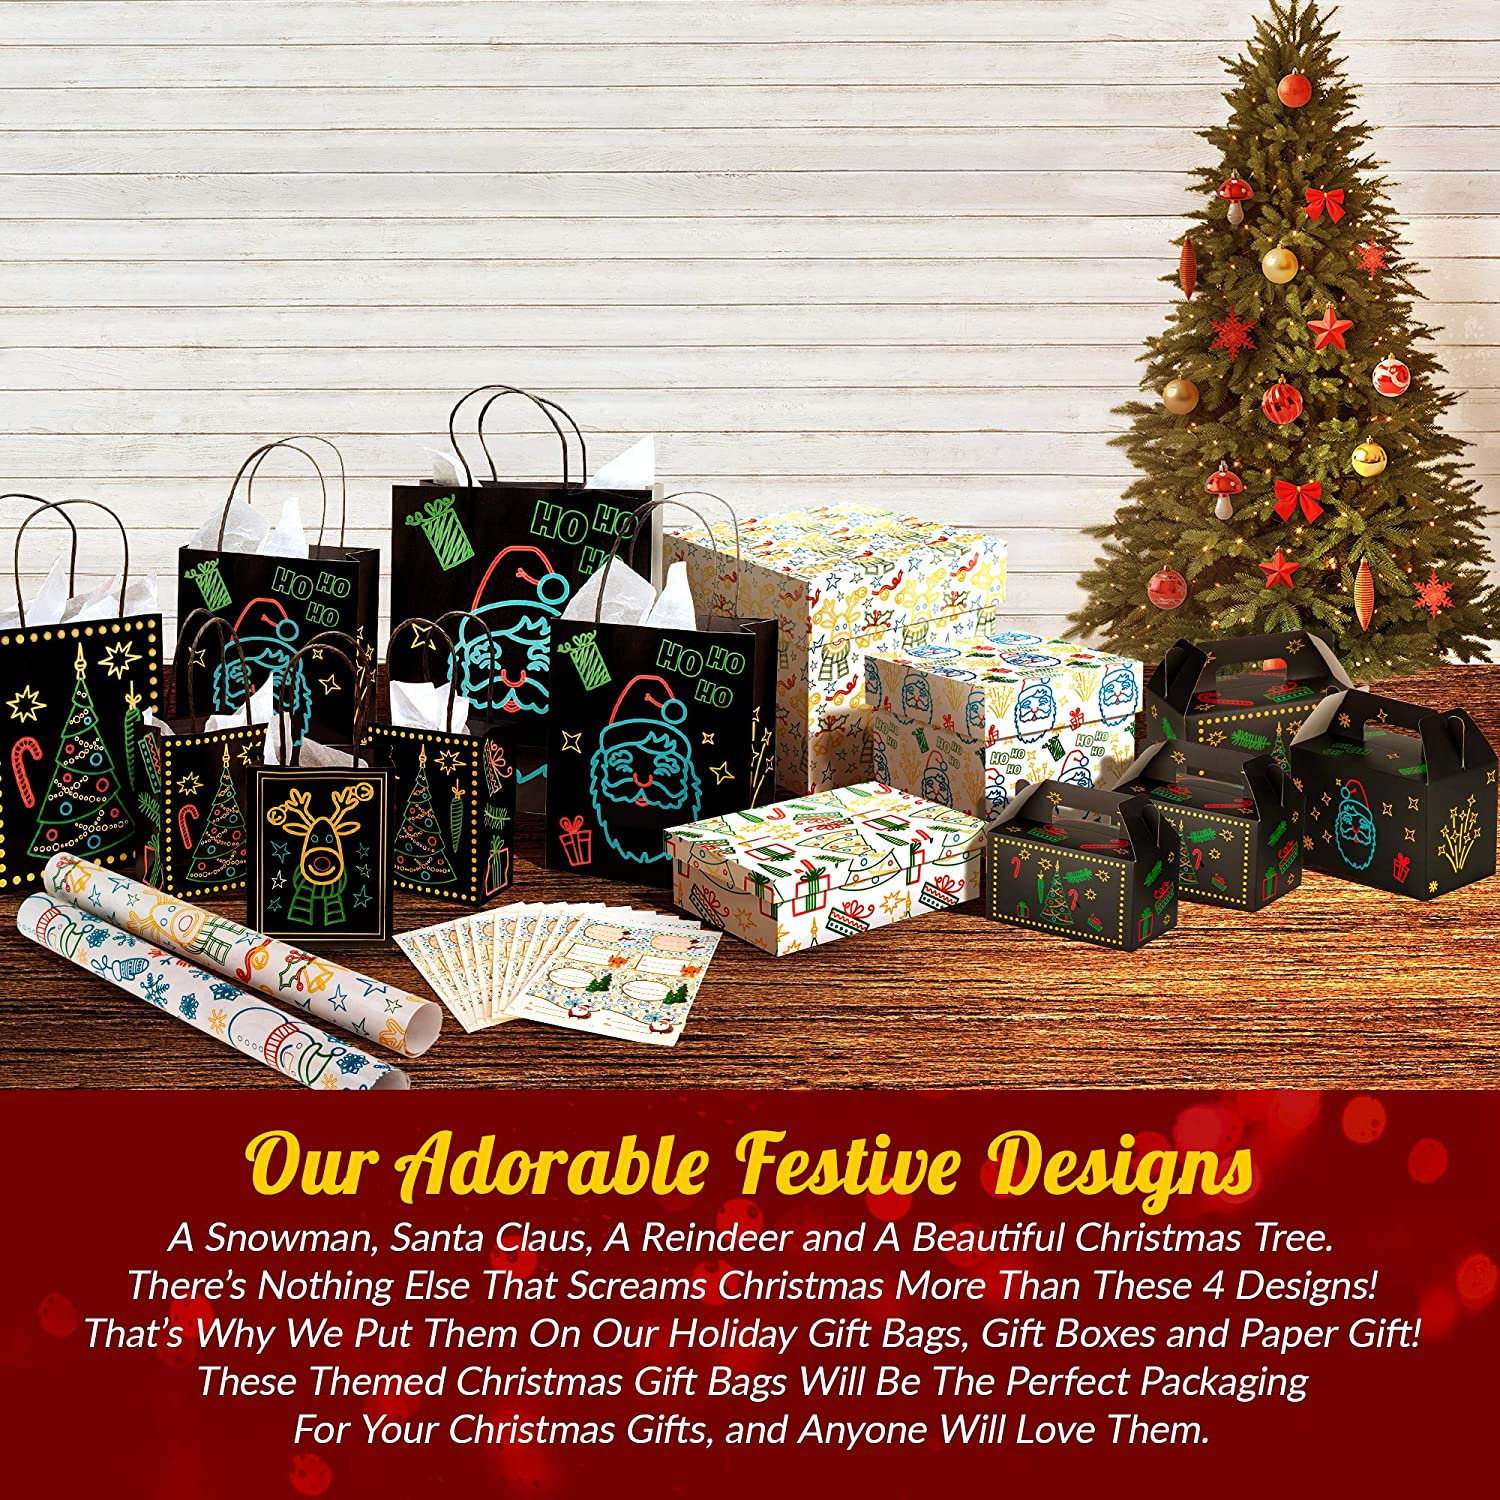 Gift Set With Unique Luminous Festive Designs /& Patterns 22 Piece 11 Bags Of 4 Different Designs Christmas Holiday Glow-In-The-Dark Gift Bag 3 Sizes Large medium small /& 11 White Tissue Papers